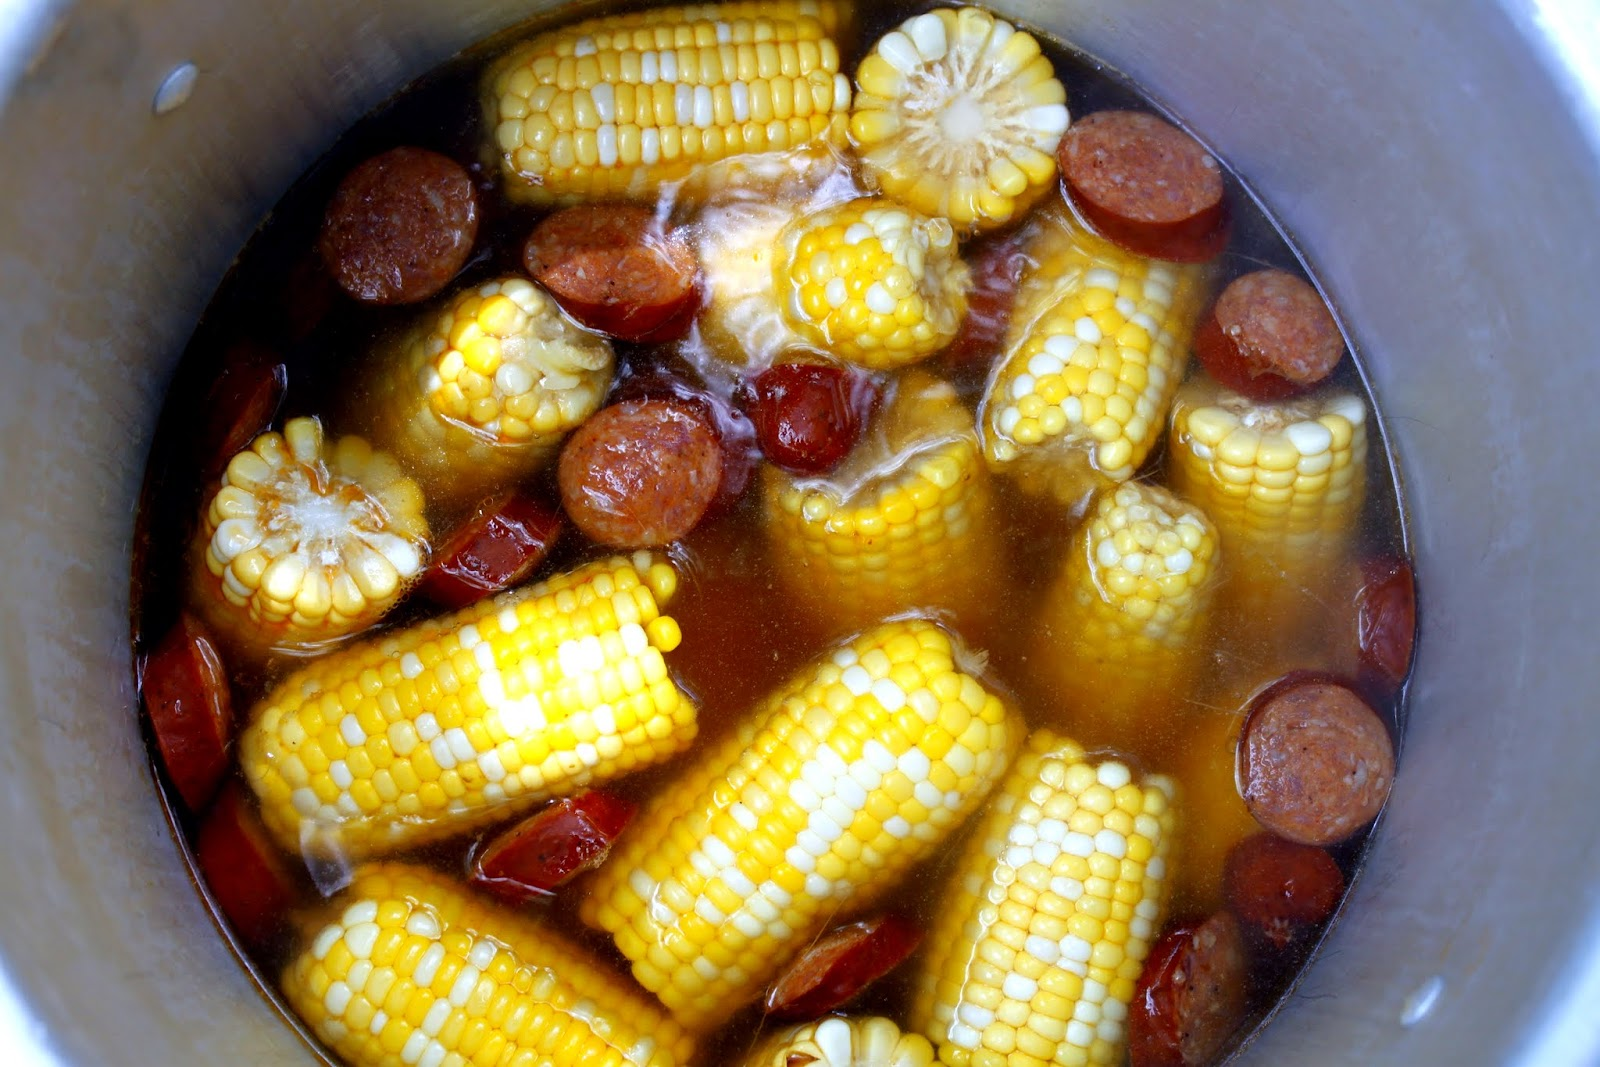 Everything Came Out Great €� The Potatoes, Corn And Garlic All Soaked Up The  Cajun Flavor With Just A Little Bit Of Spice And The Fish Remained  Surprisingly